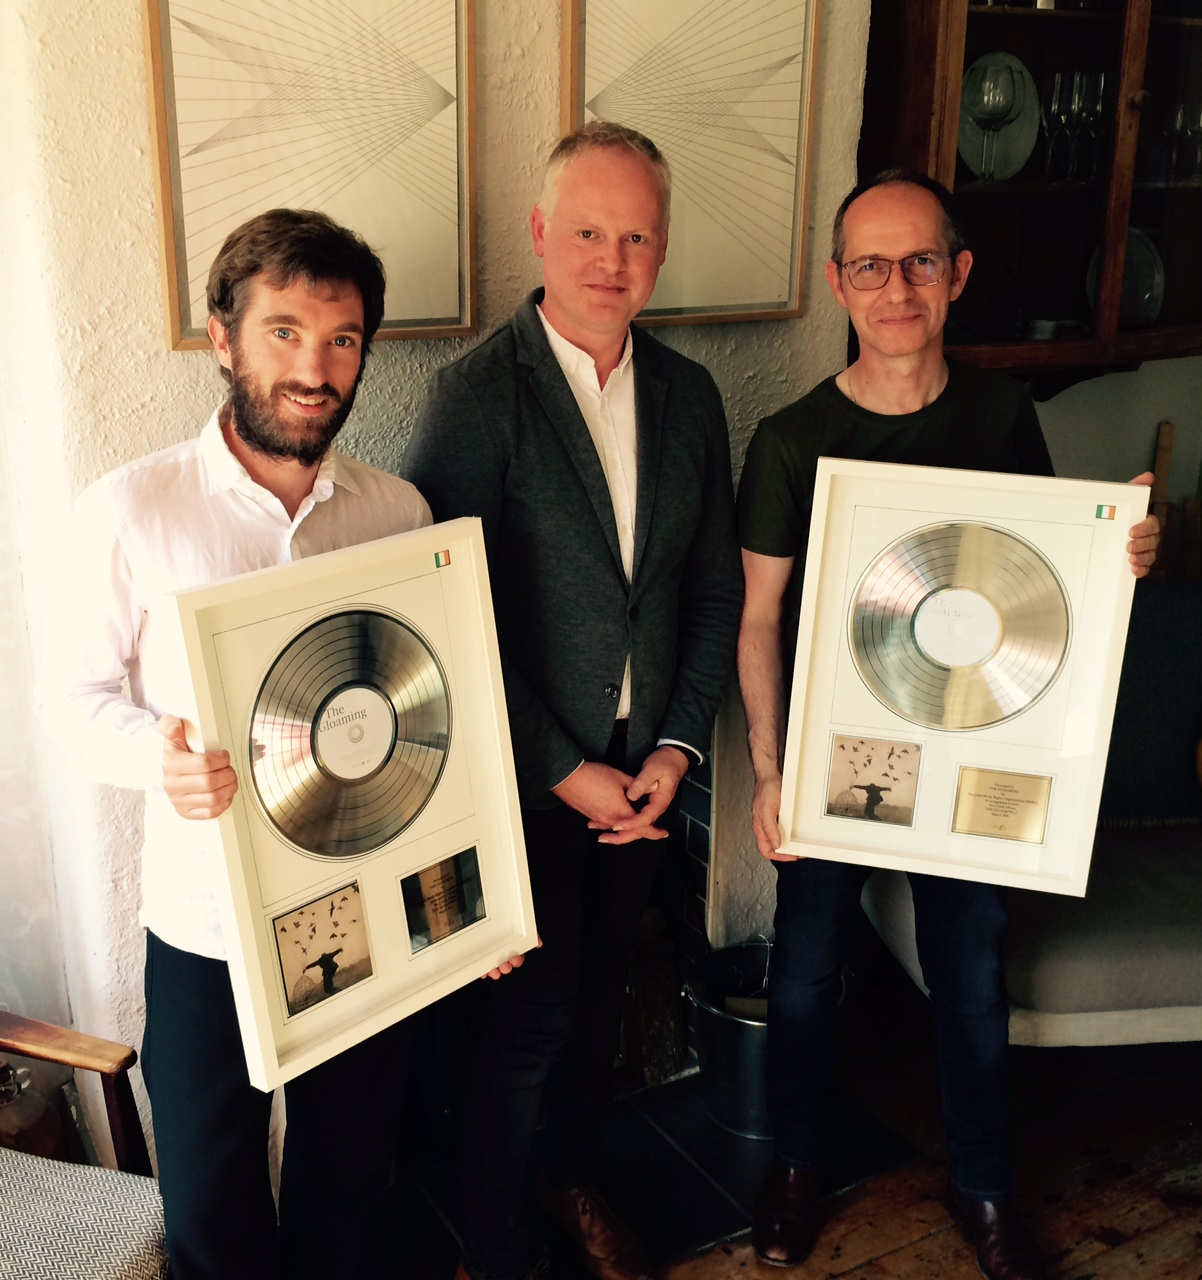 The Gloaming Awarded For Their Second Album '2'